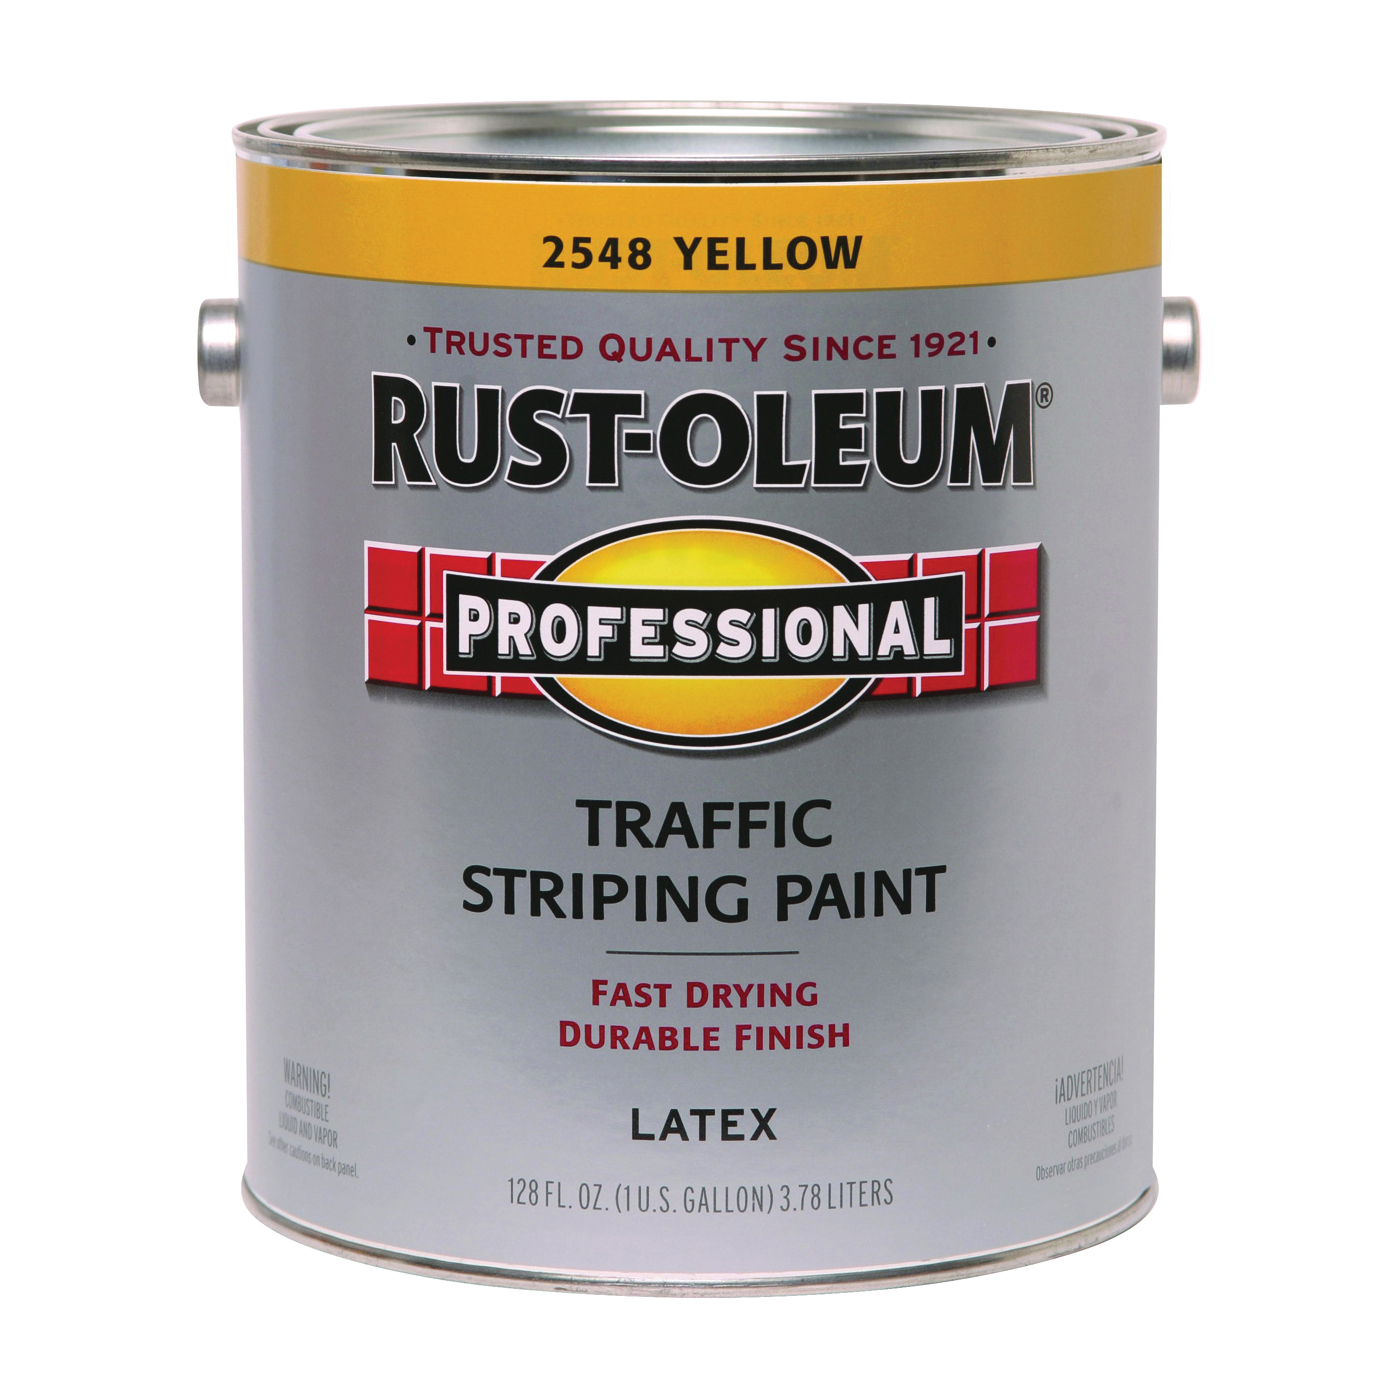 Picture of RUST-OLEUM PROFESSIONAL 2548402 Traffic Striping Paint, Flat, Traffic Yellow, 1 gal, Pail